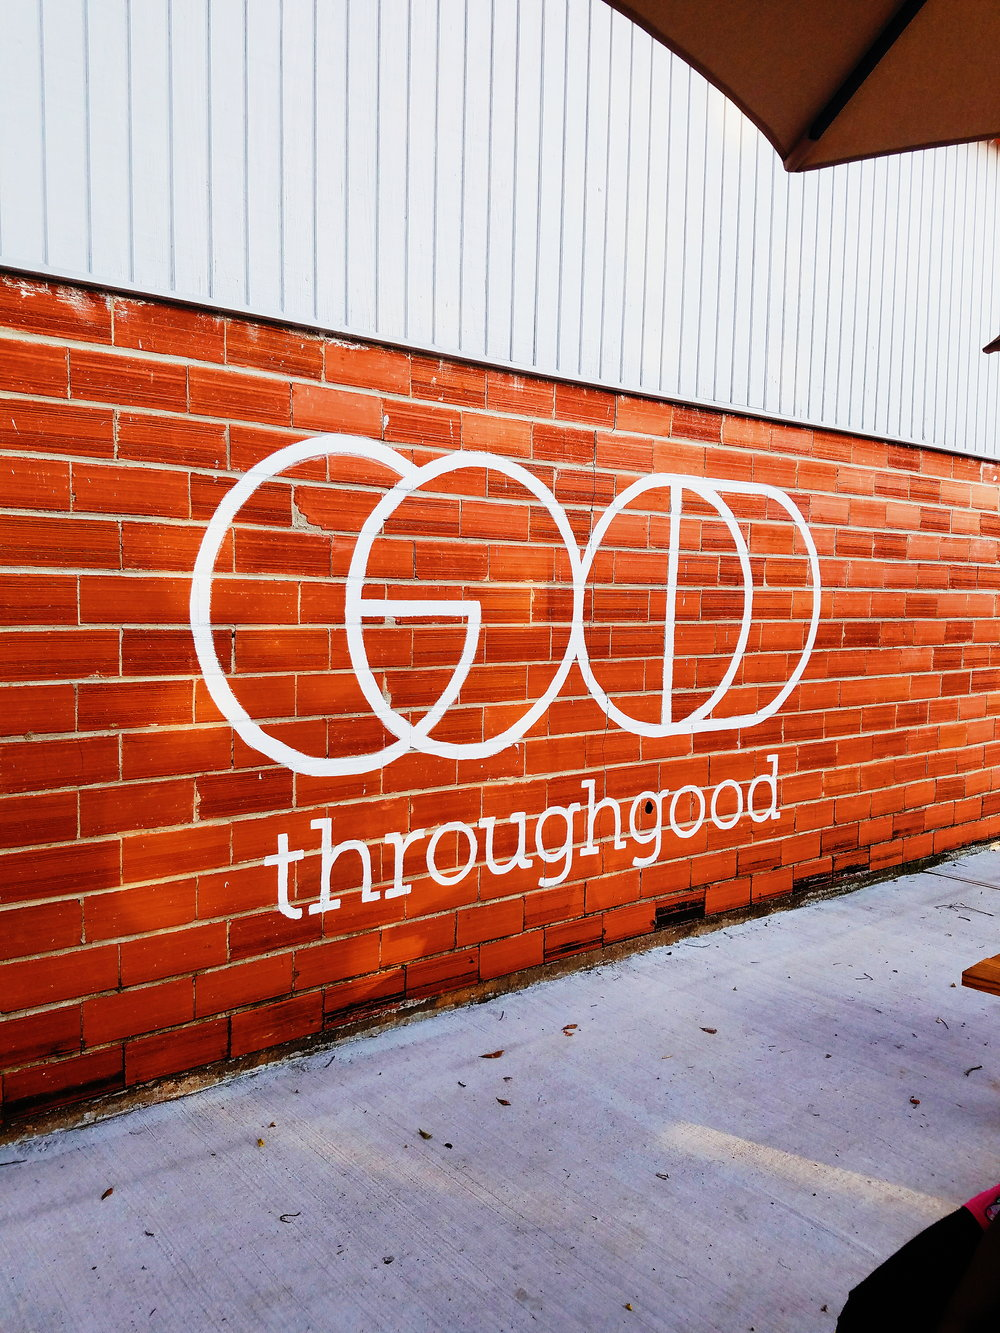 Throughgood Coffee  - throughgoodcoffee.comThey believe in all things good...coffee, tea, people, food, and cause. The patio areas are great for hanging outside when you want fresh air. Baristas here really care.